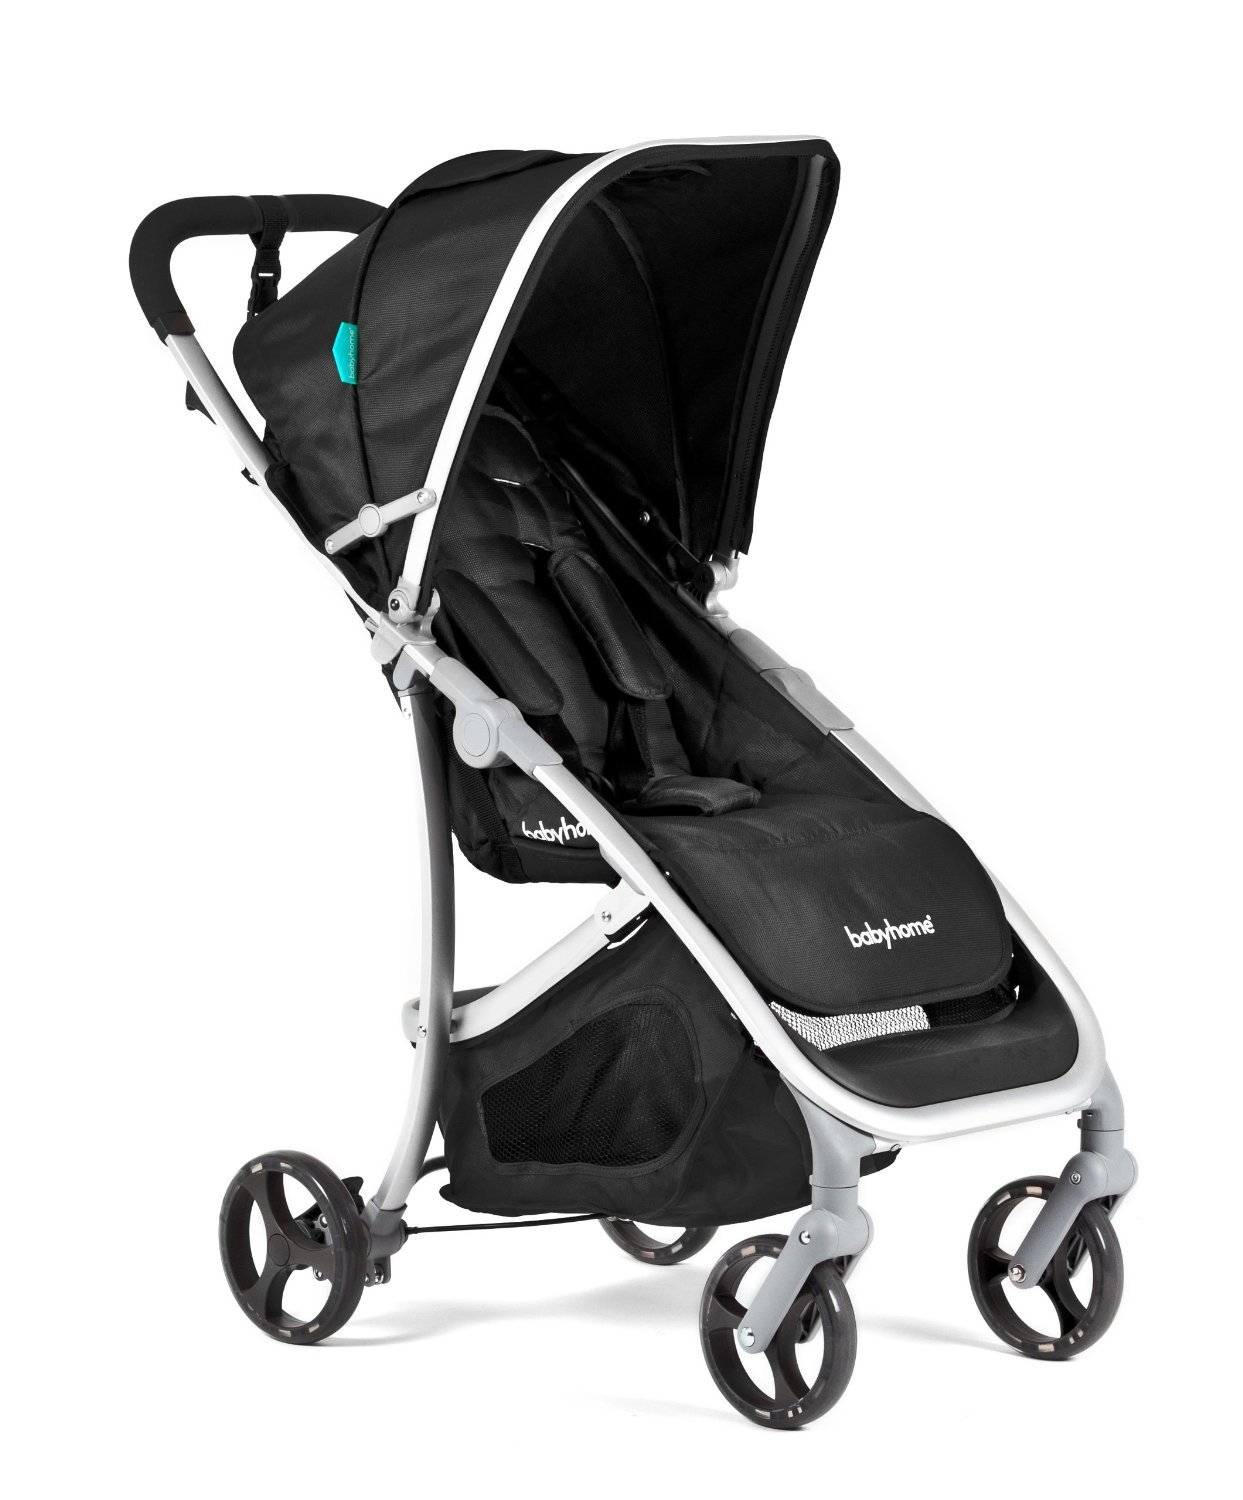 Babyhome Emotion Silla de paseo color negro